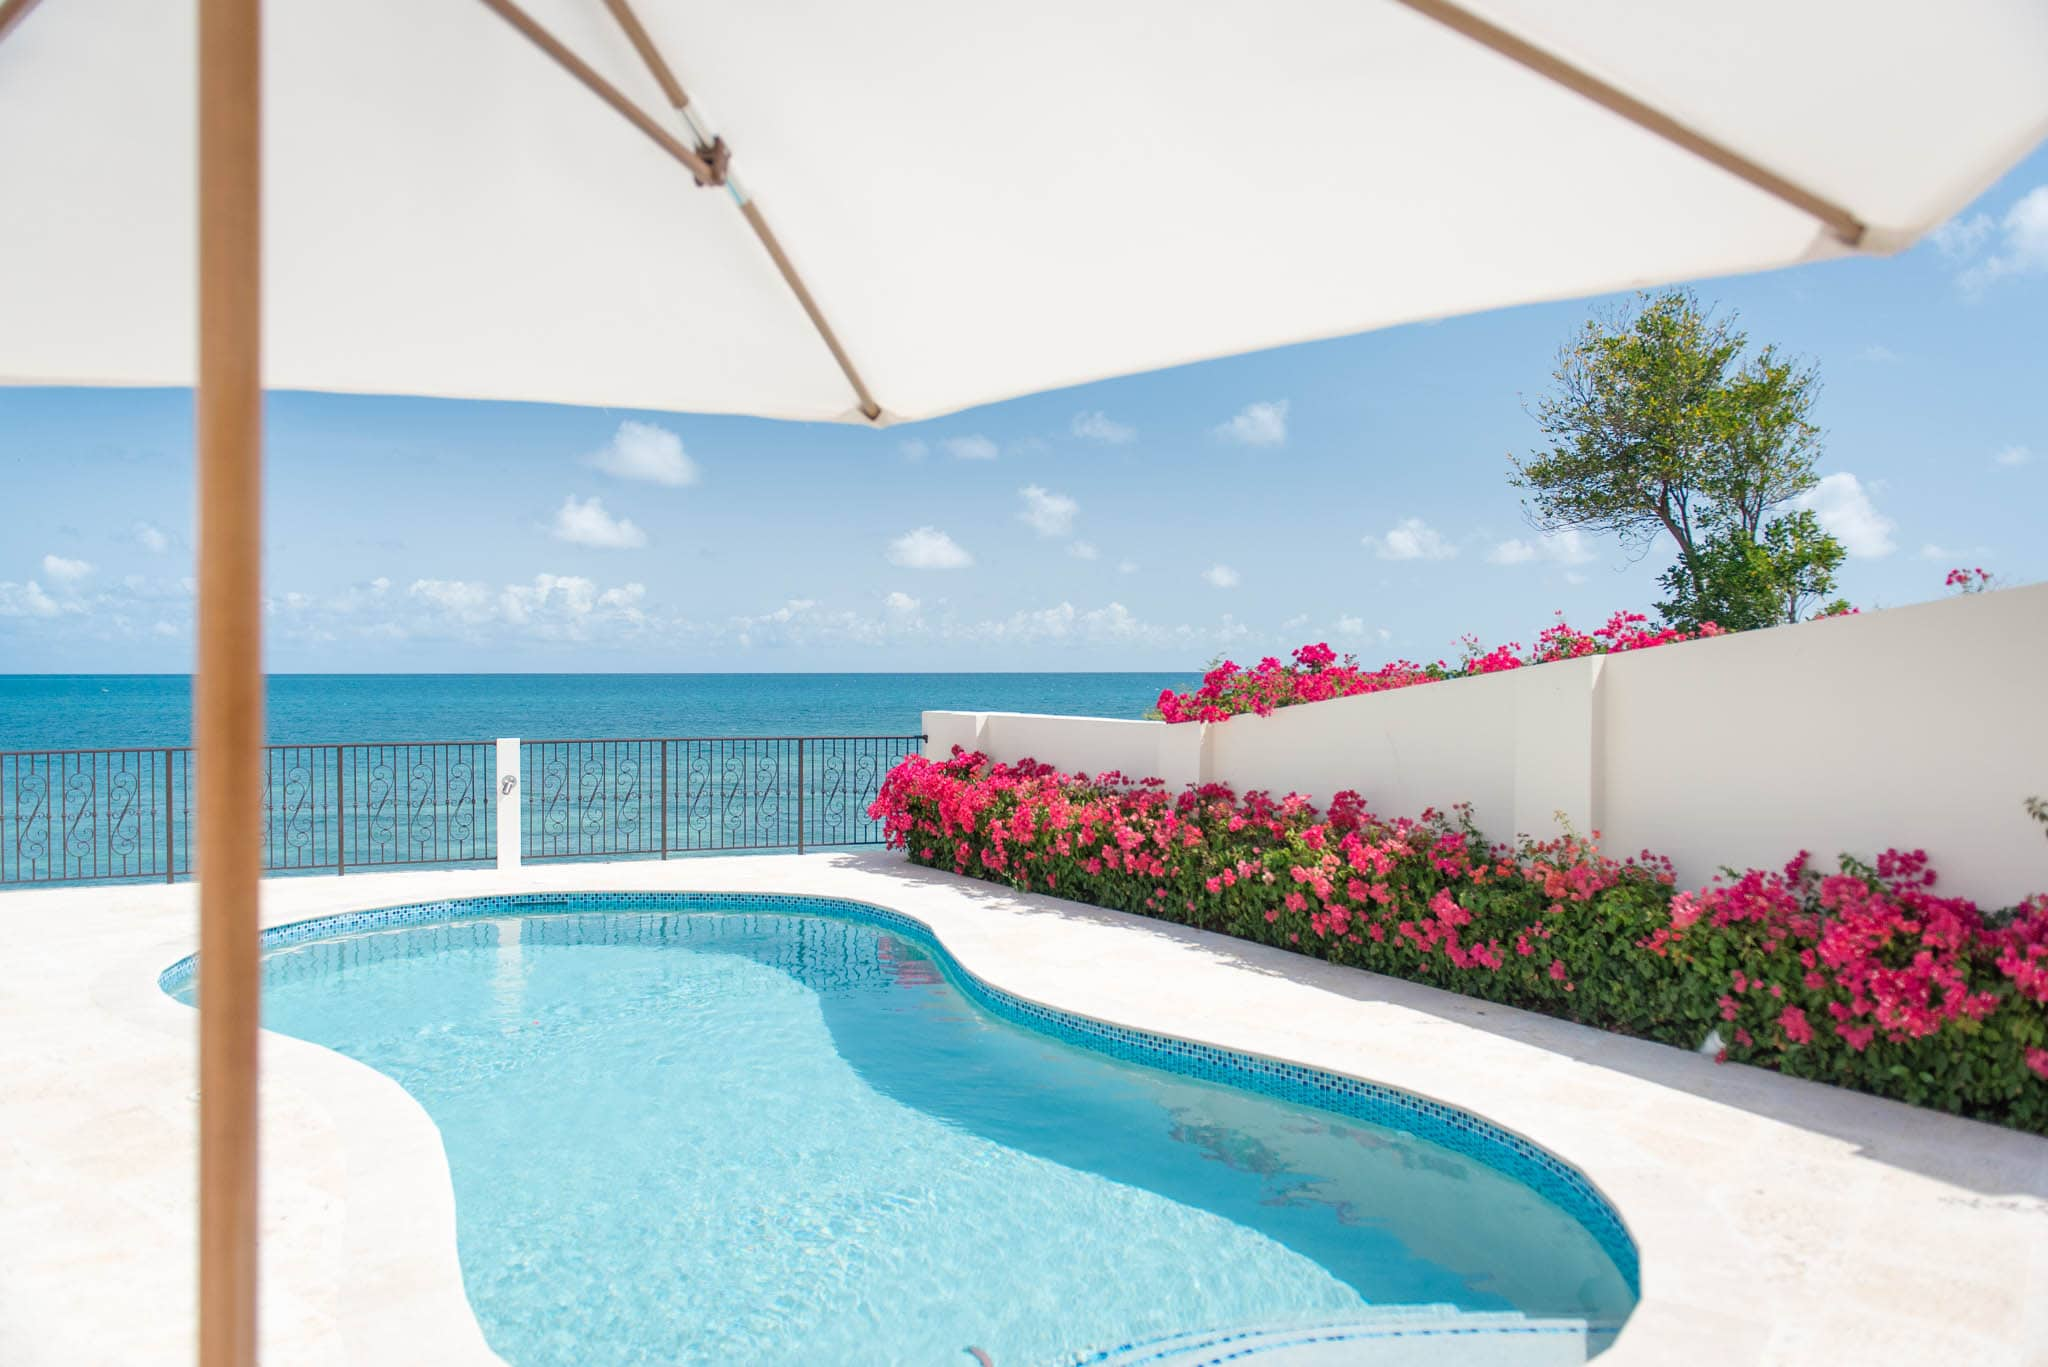 Upgrade to a villa or cottage and enjoy these pools all to yourself.